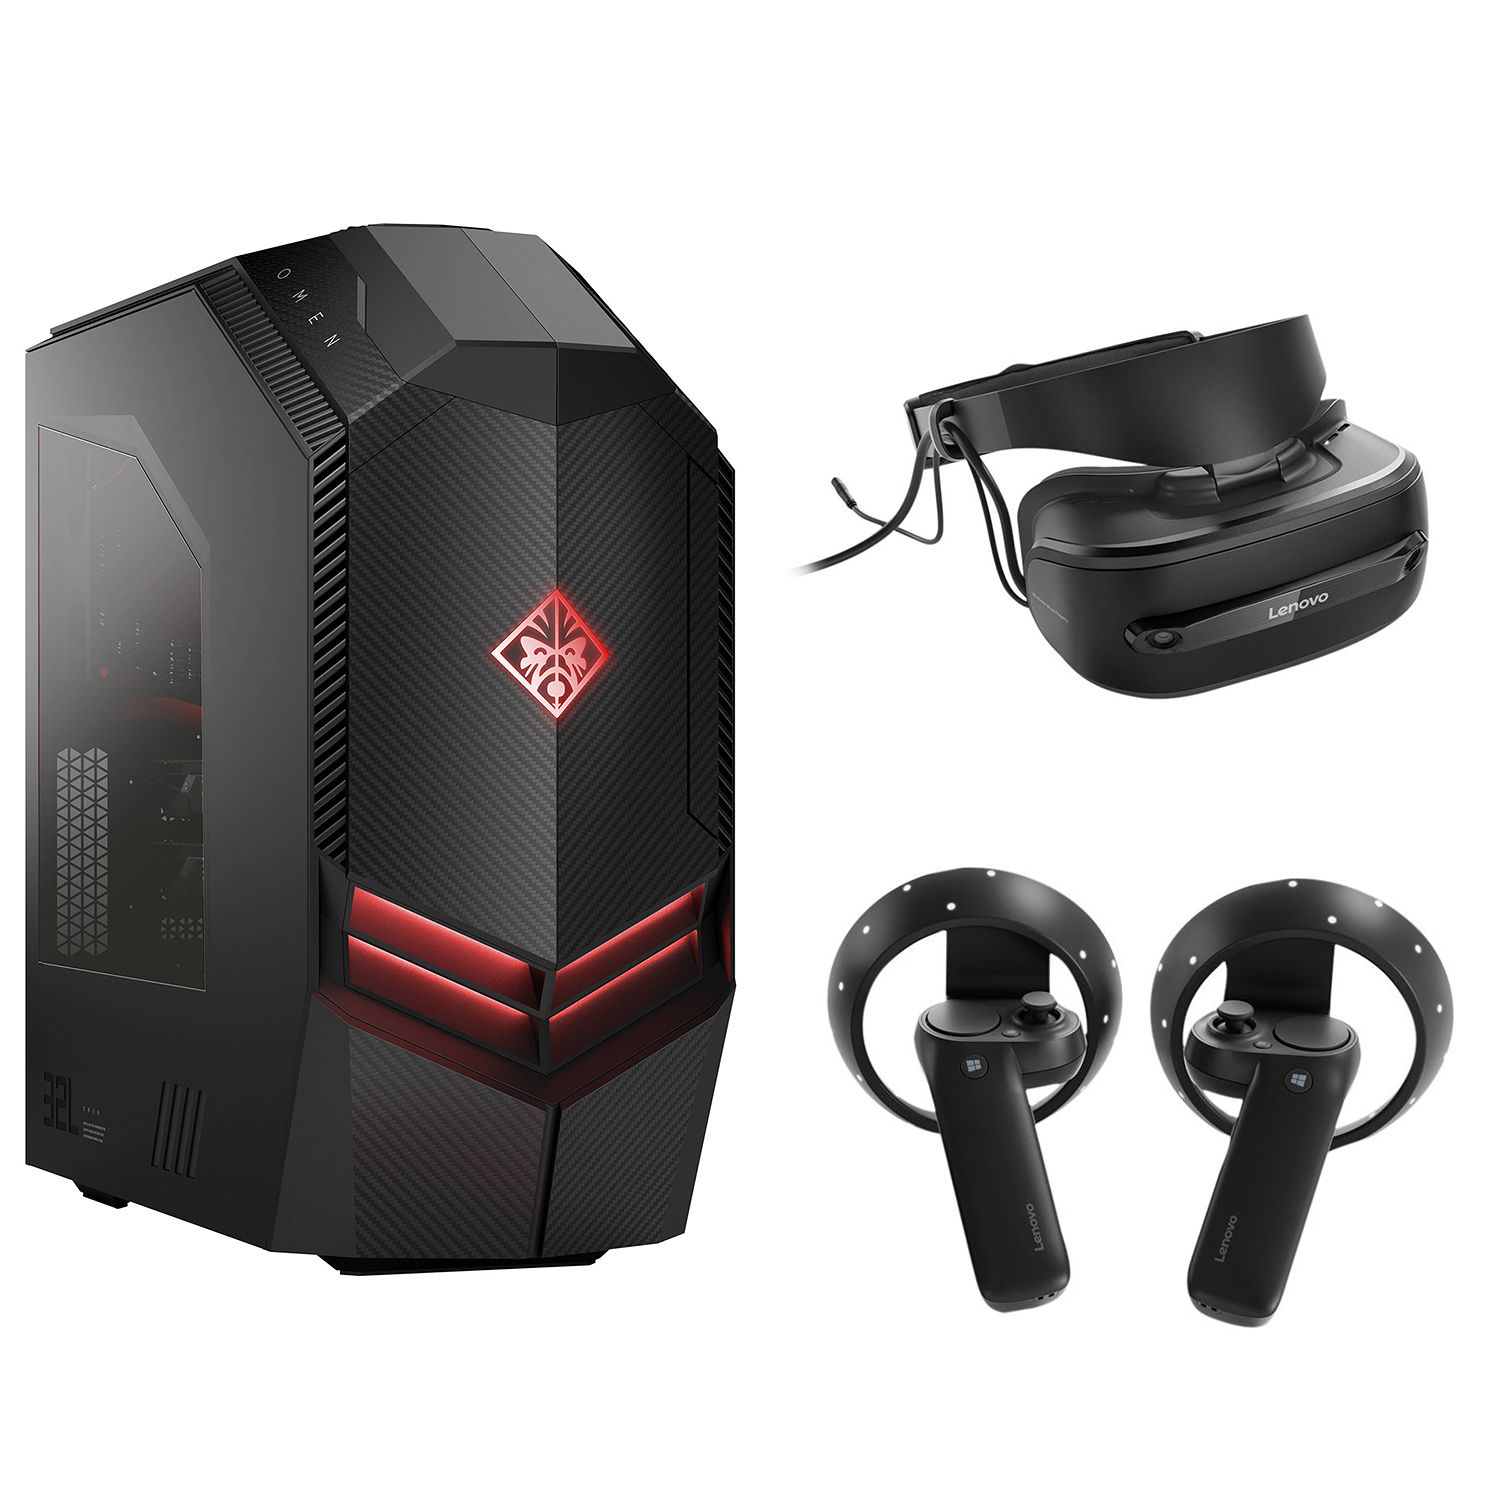 HP OMEN 880-120 Desktop Computer with Mixed Reality Headset Kit